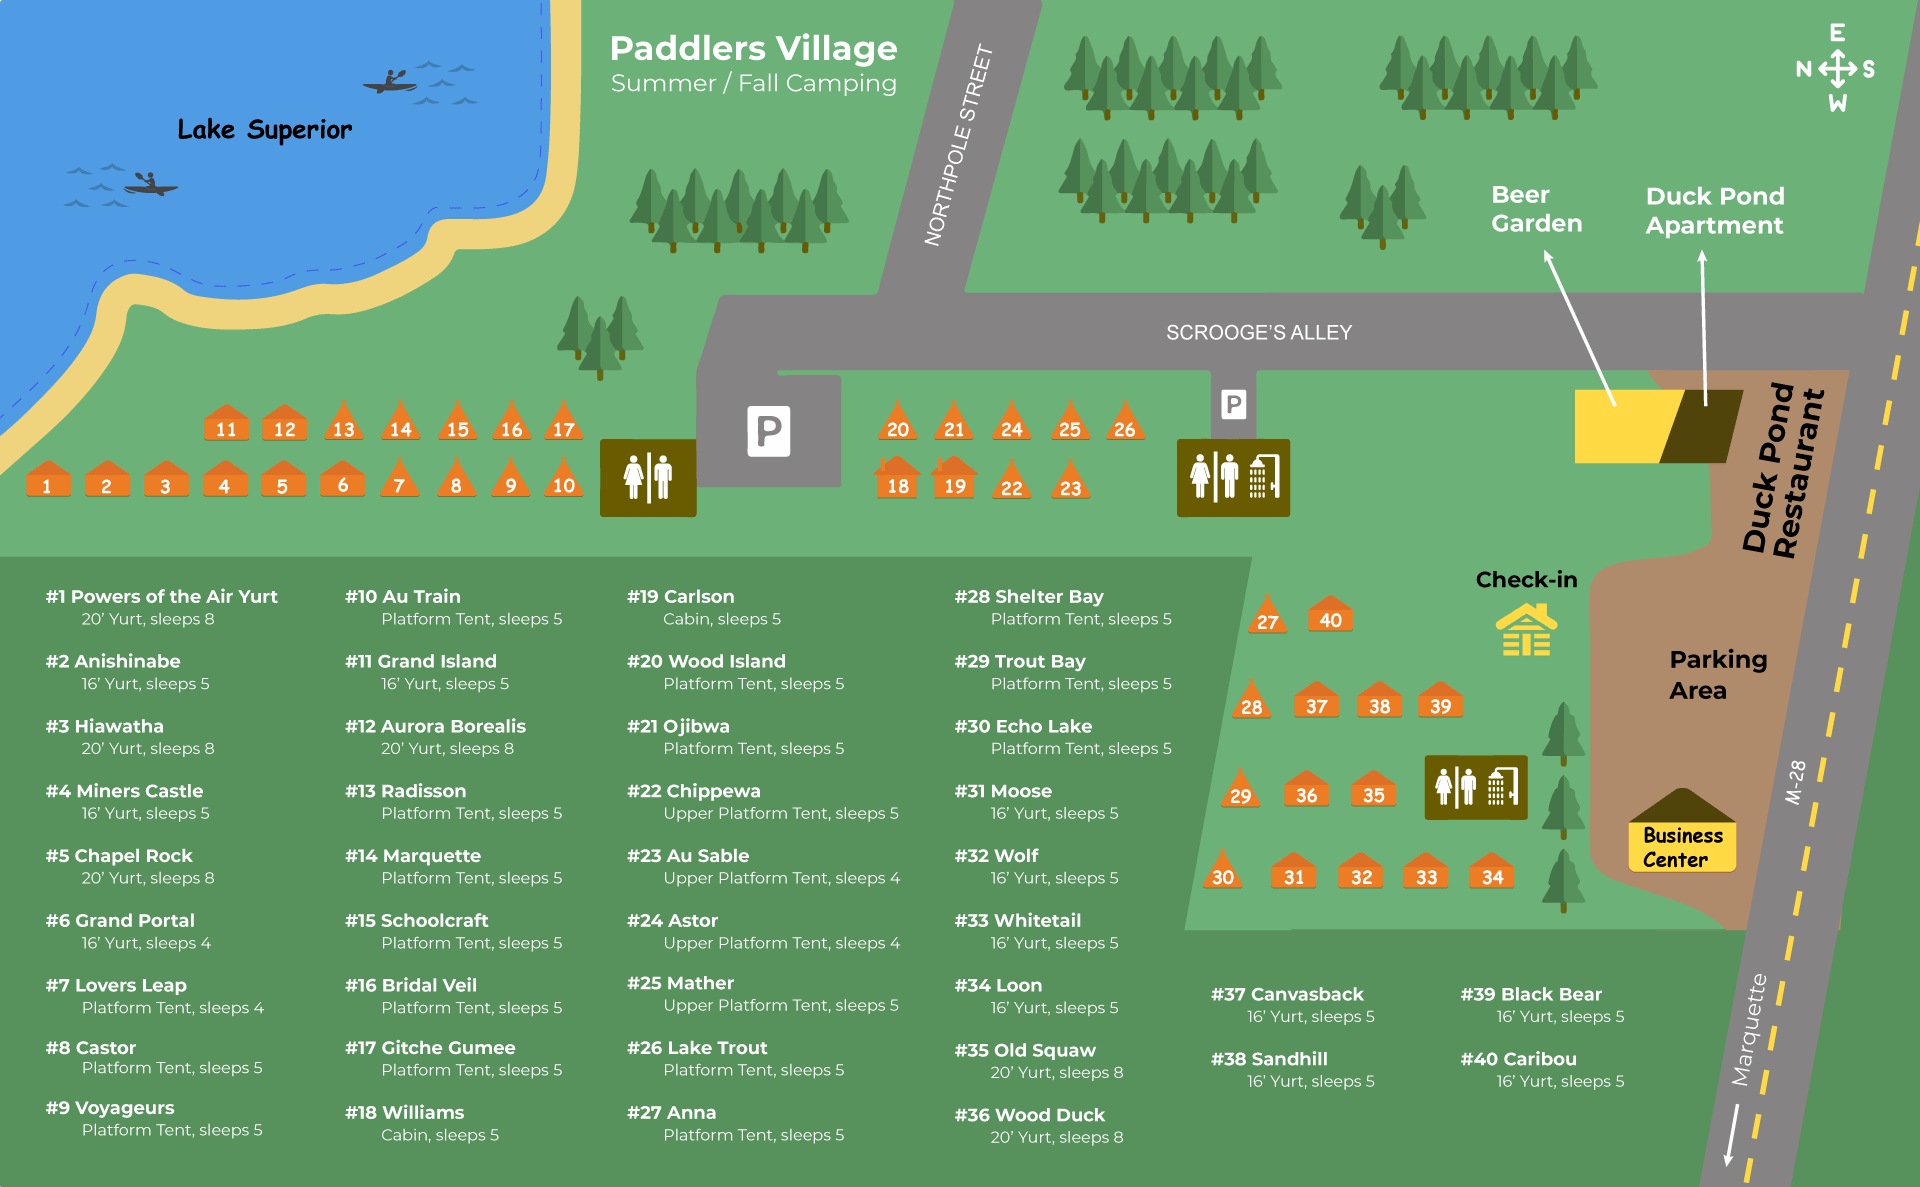 paddlers-village-map-2019